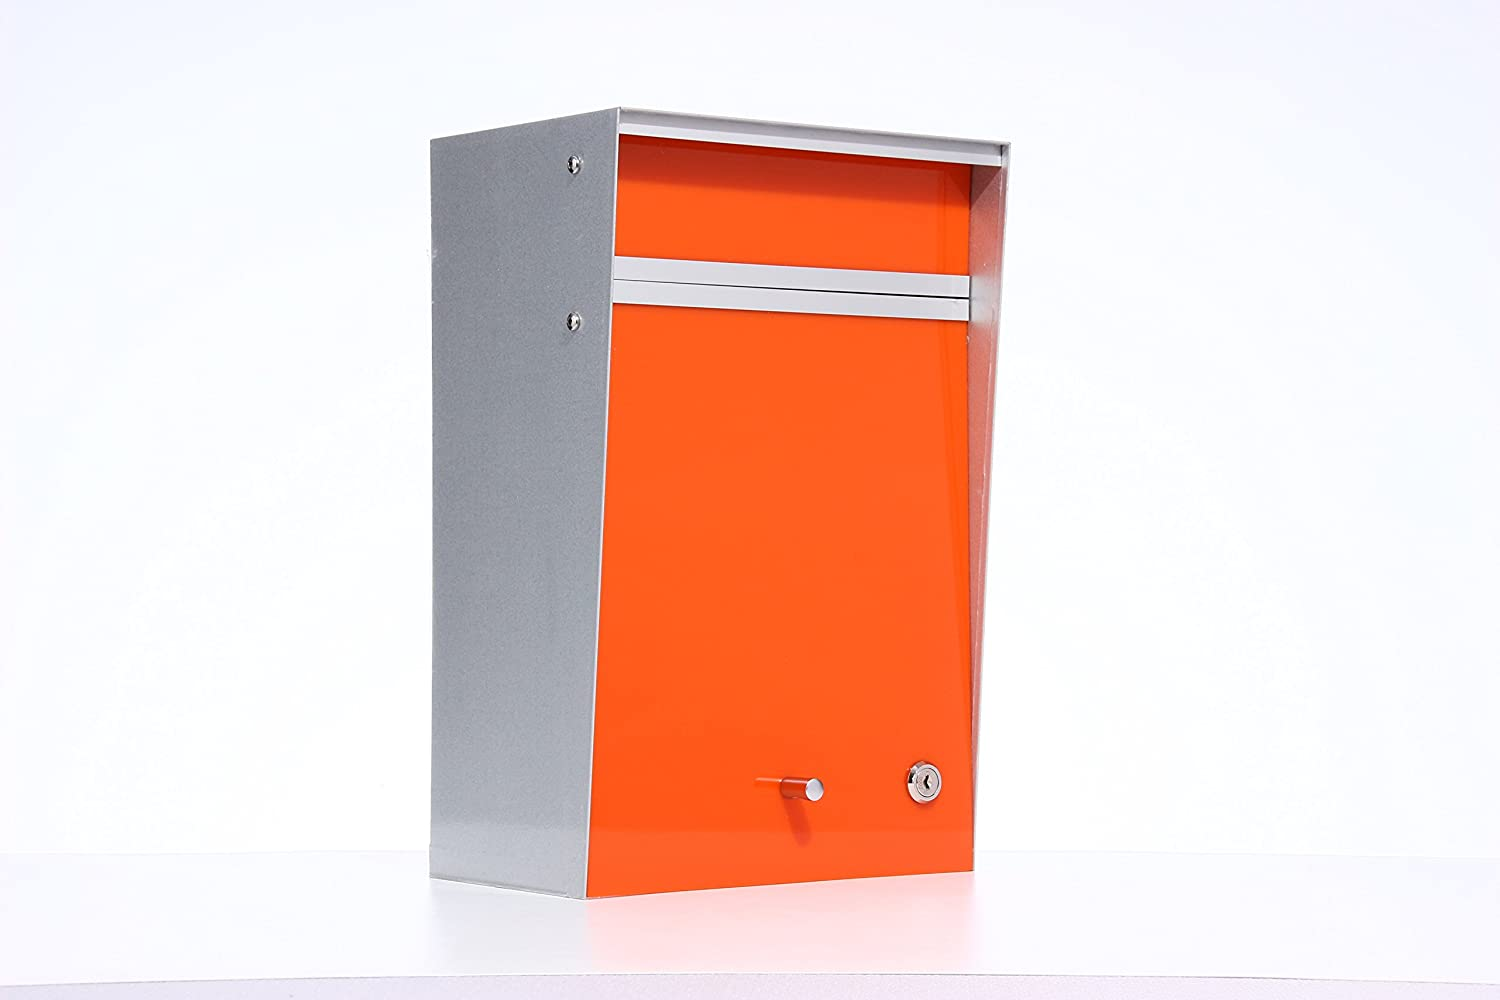 Box Design ポスト 郵便受け Wall Mounted  Orange B00W6HVQ8U 28080 Orange Orange